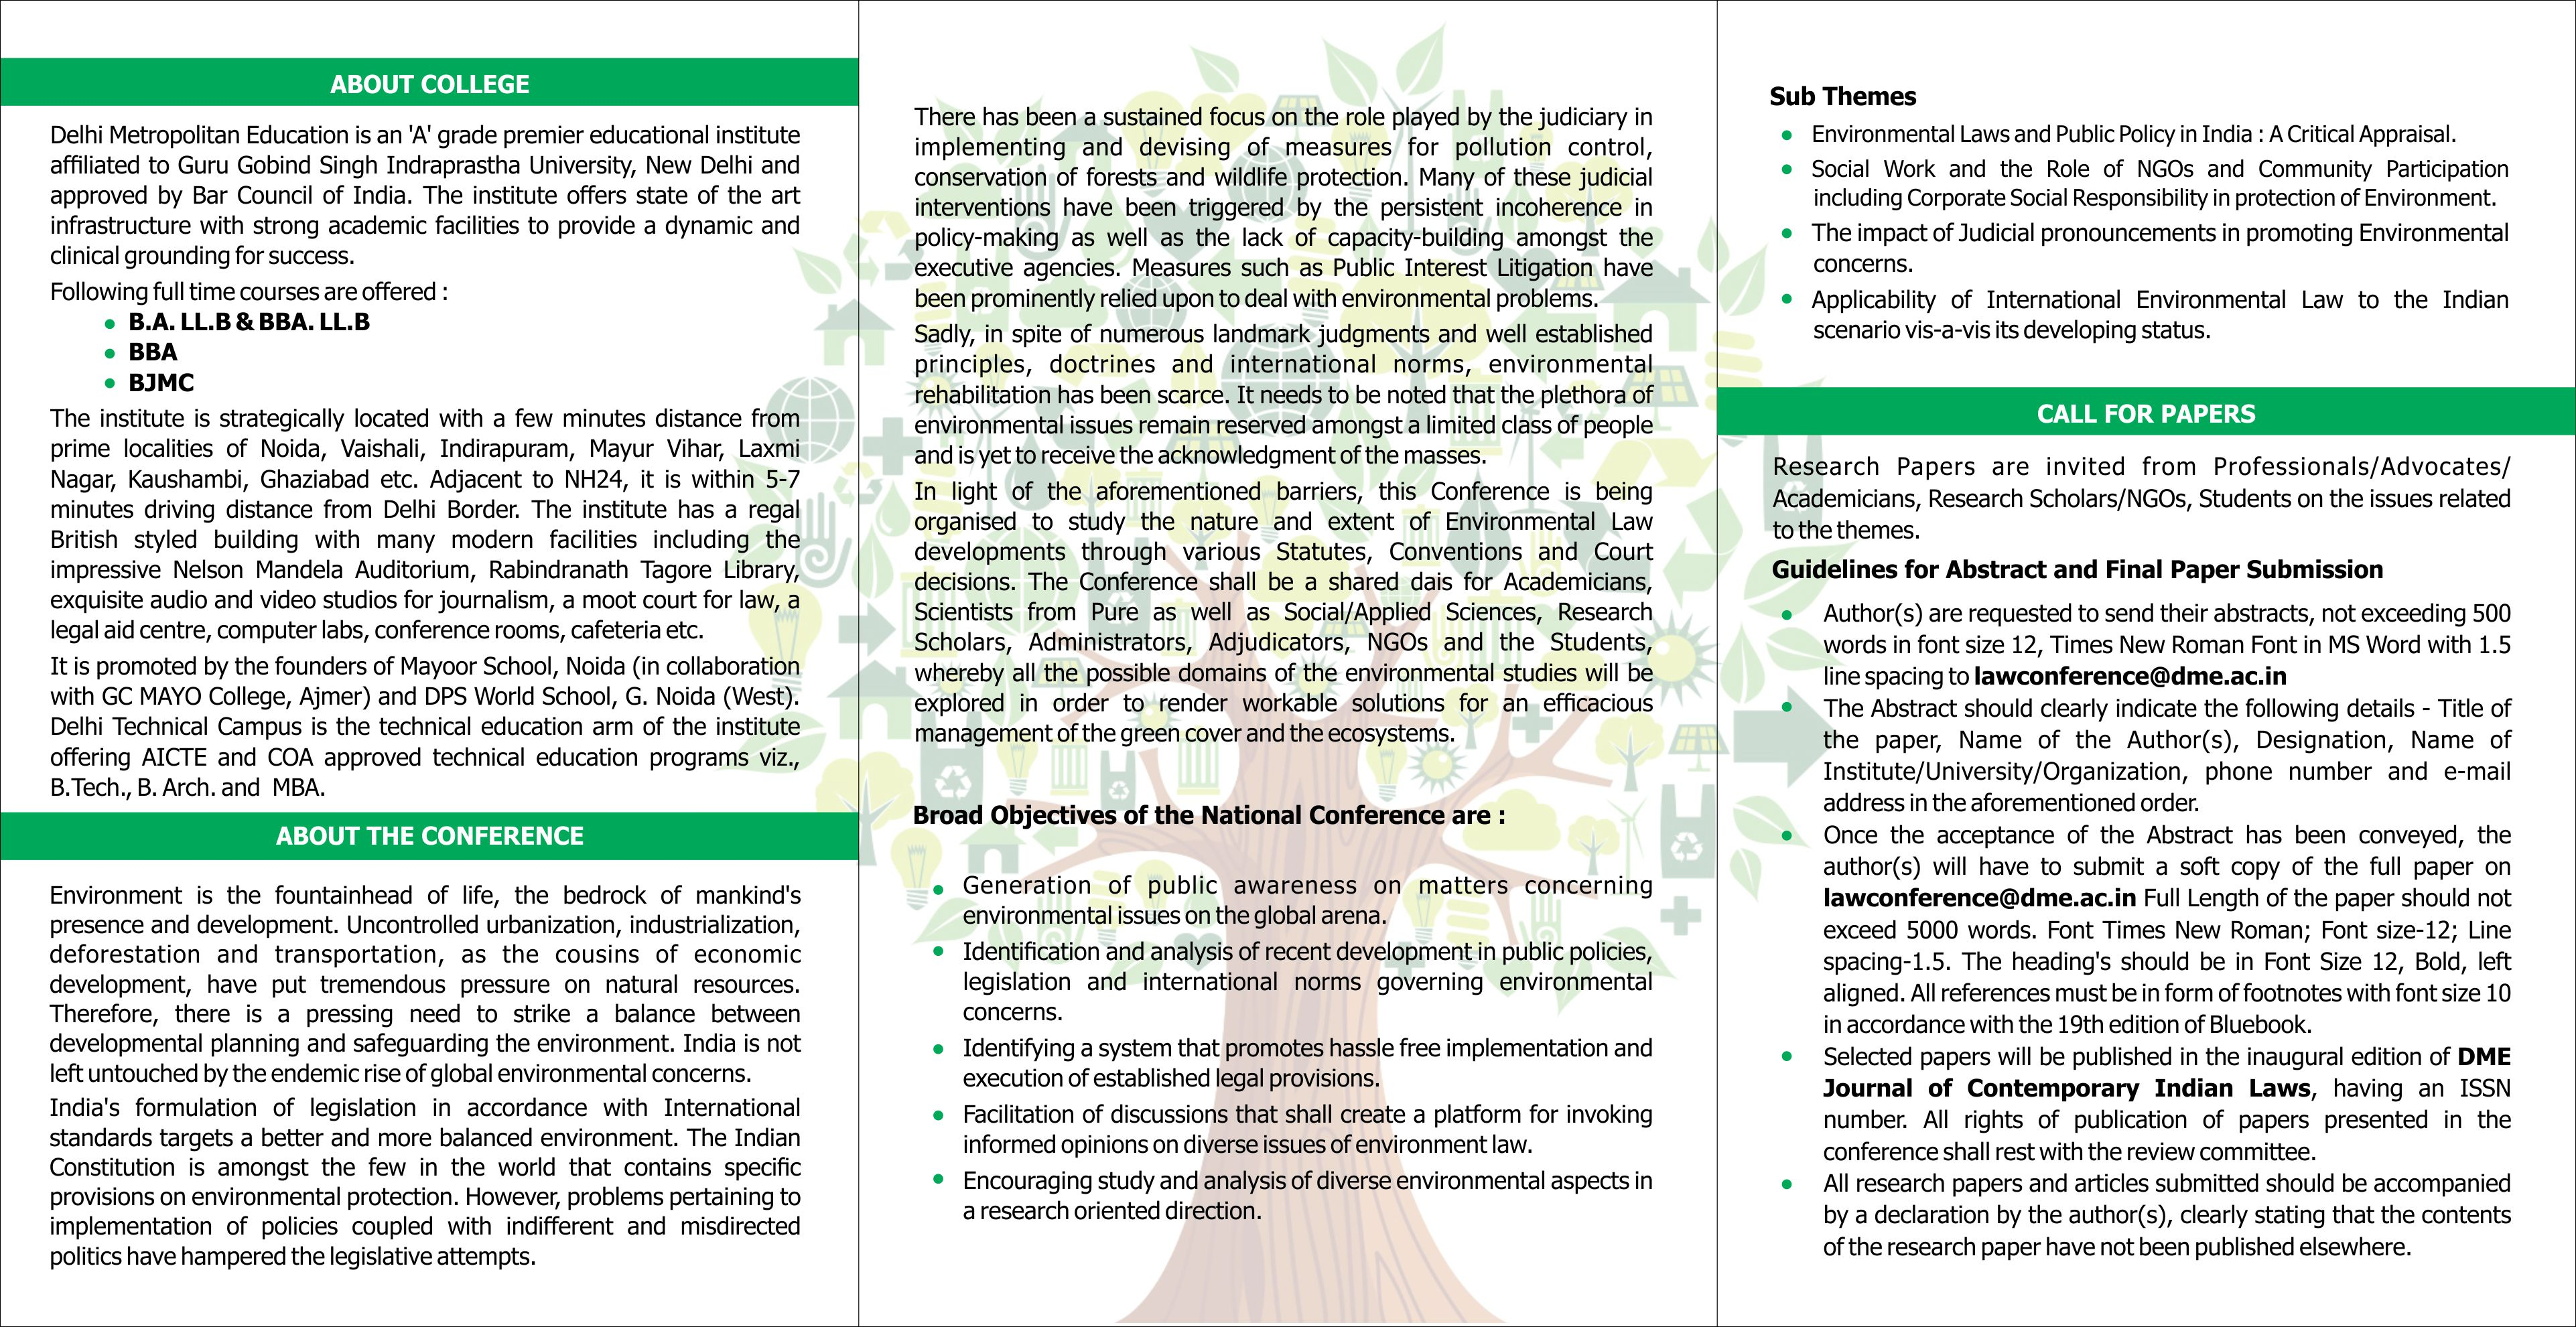 DME Conference on ENVIRONMENTAL JURISPRUDENCE IN INDIA